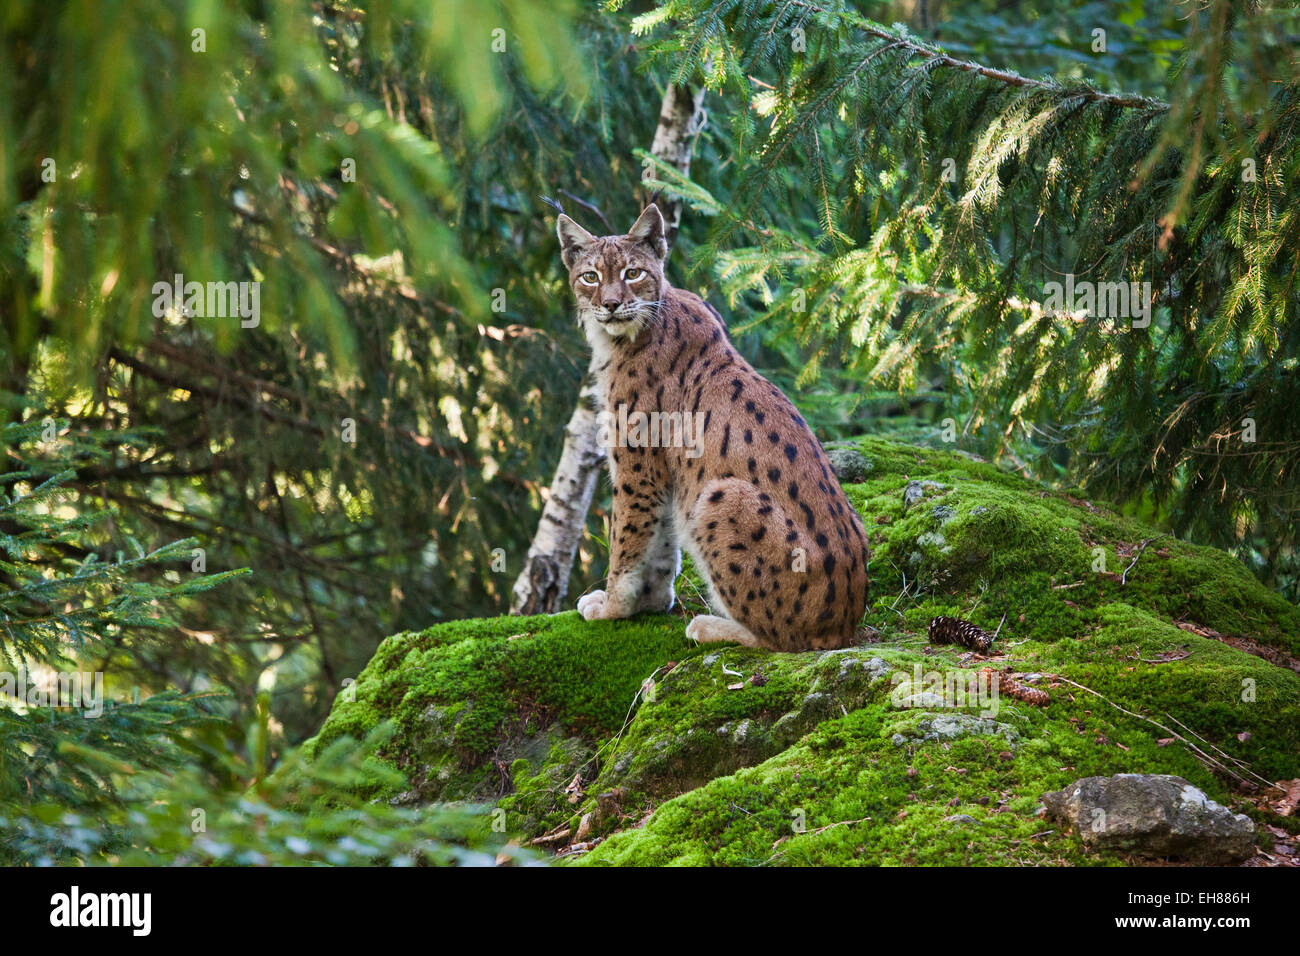 A lynx in the Bavarian National Park, Bavaria, Germany, Europe - Stock Image